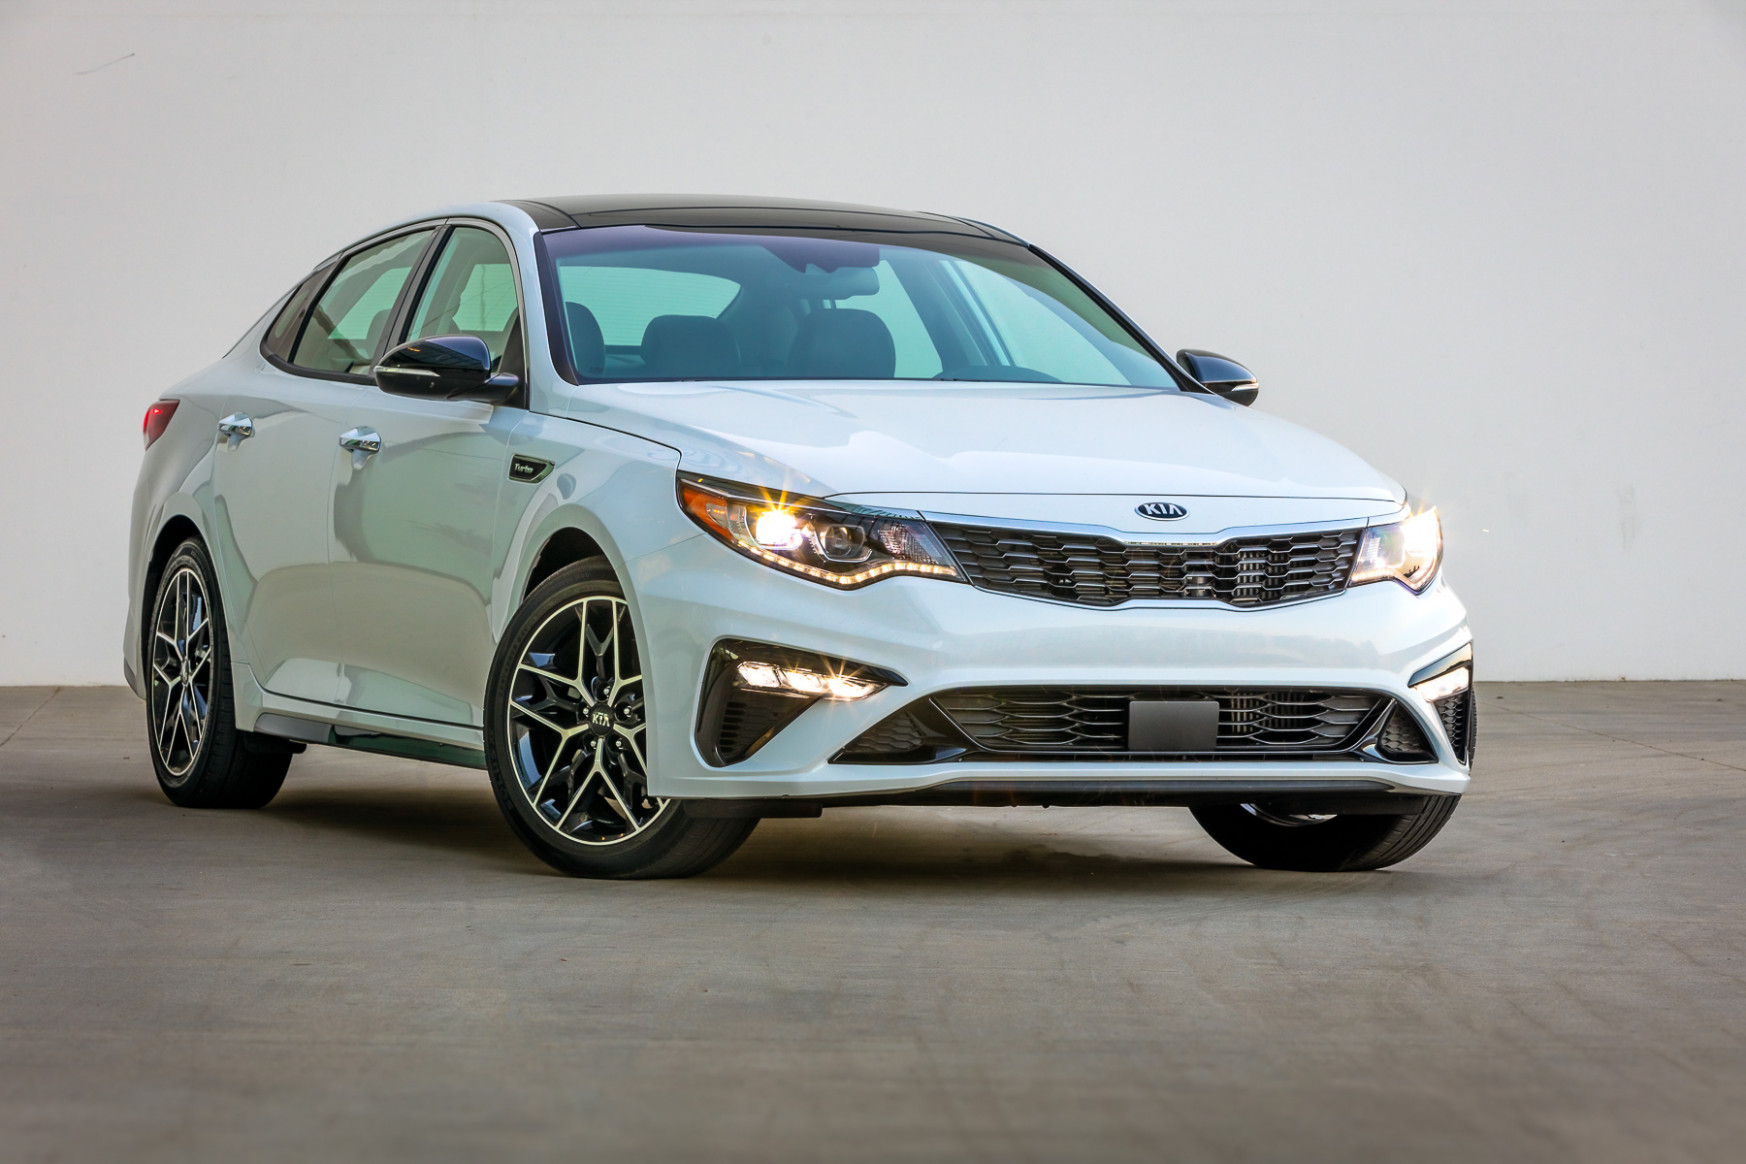 8 Kia Optima Review, Ratings, Specs, Prices, and Photos - The ..